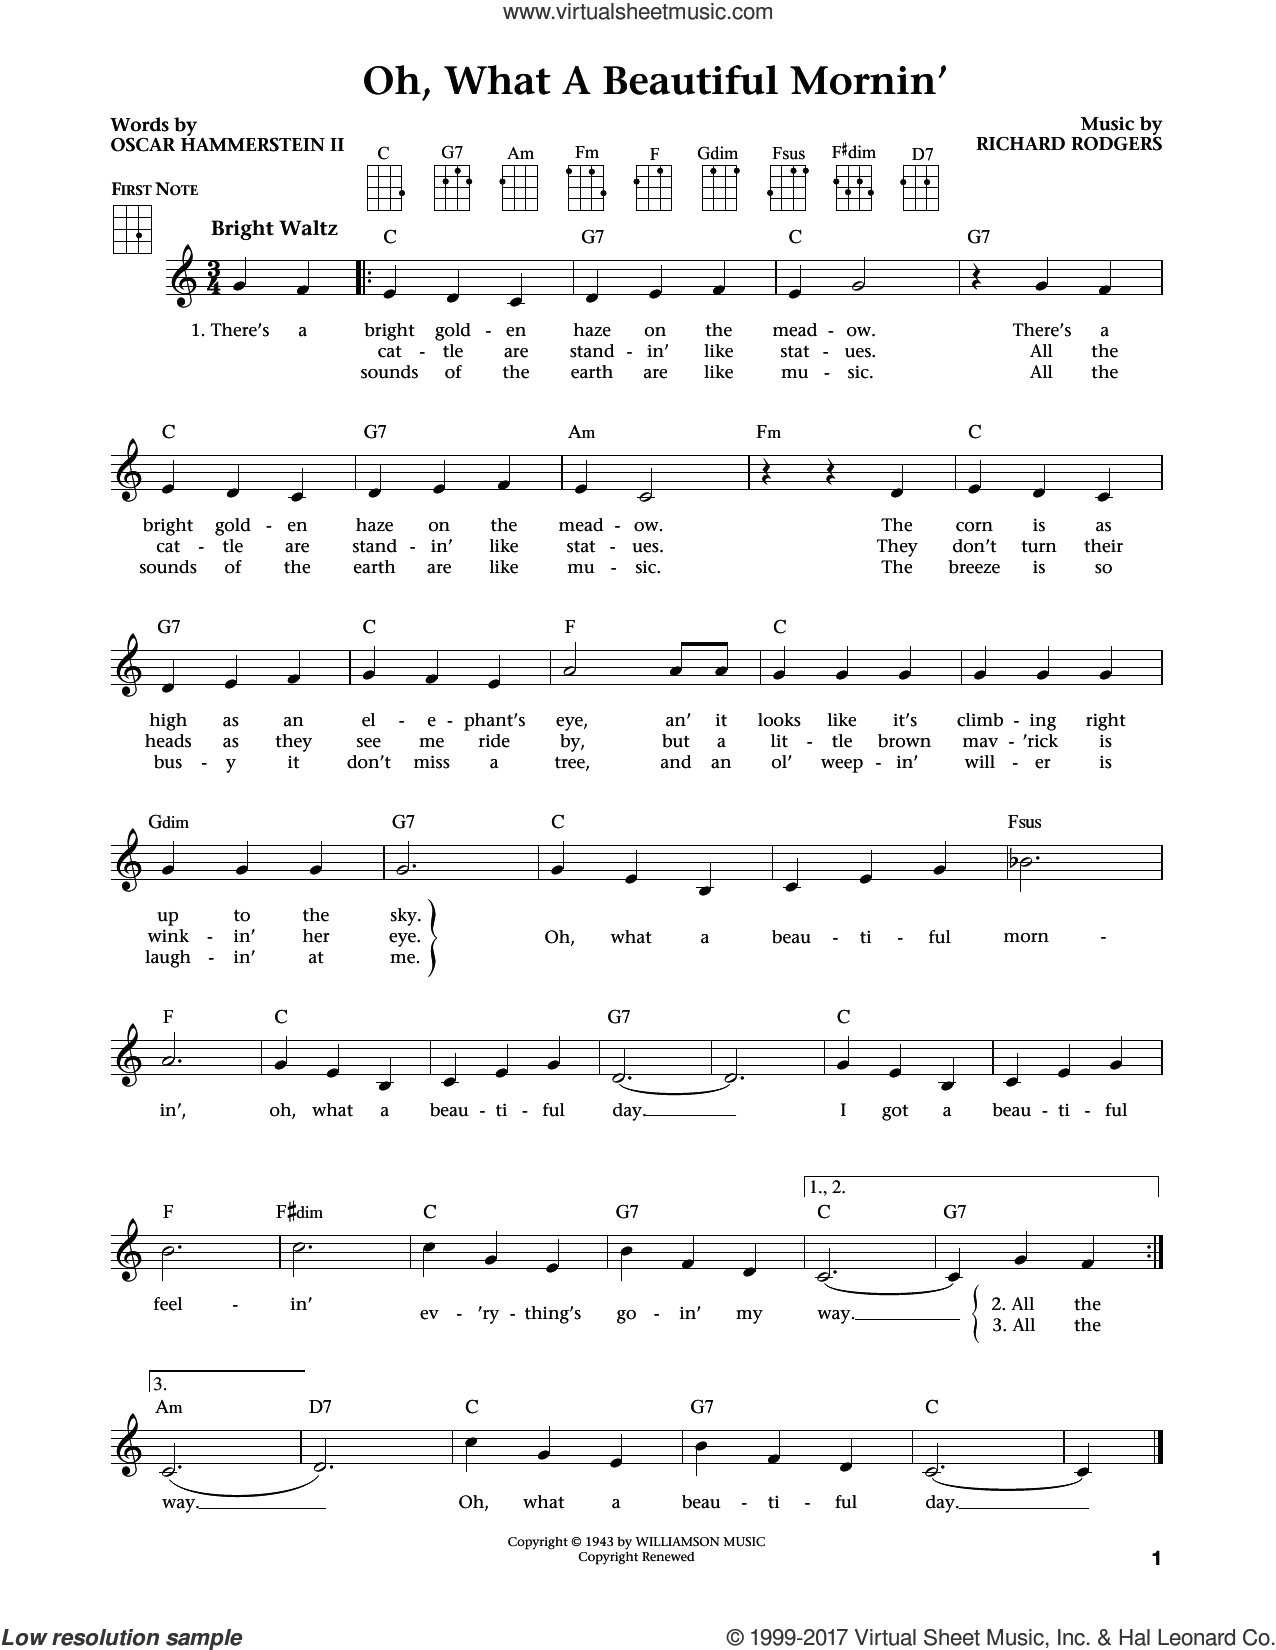 Oh, What A Beautiful Mornin' sheet music for ukulele by Rodgers & Hammerstein, Jim Beloff, Oscar II Hammerstein and Richard Rodgers. Score Image Preview.